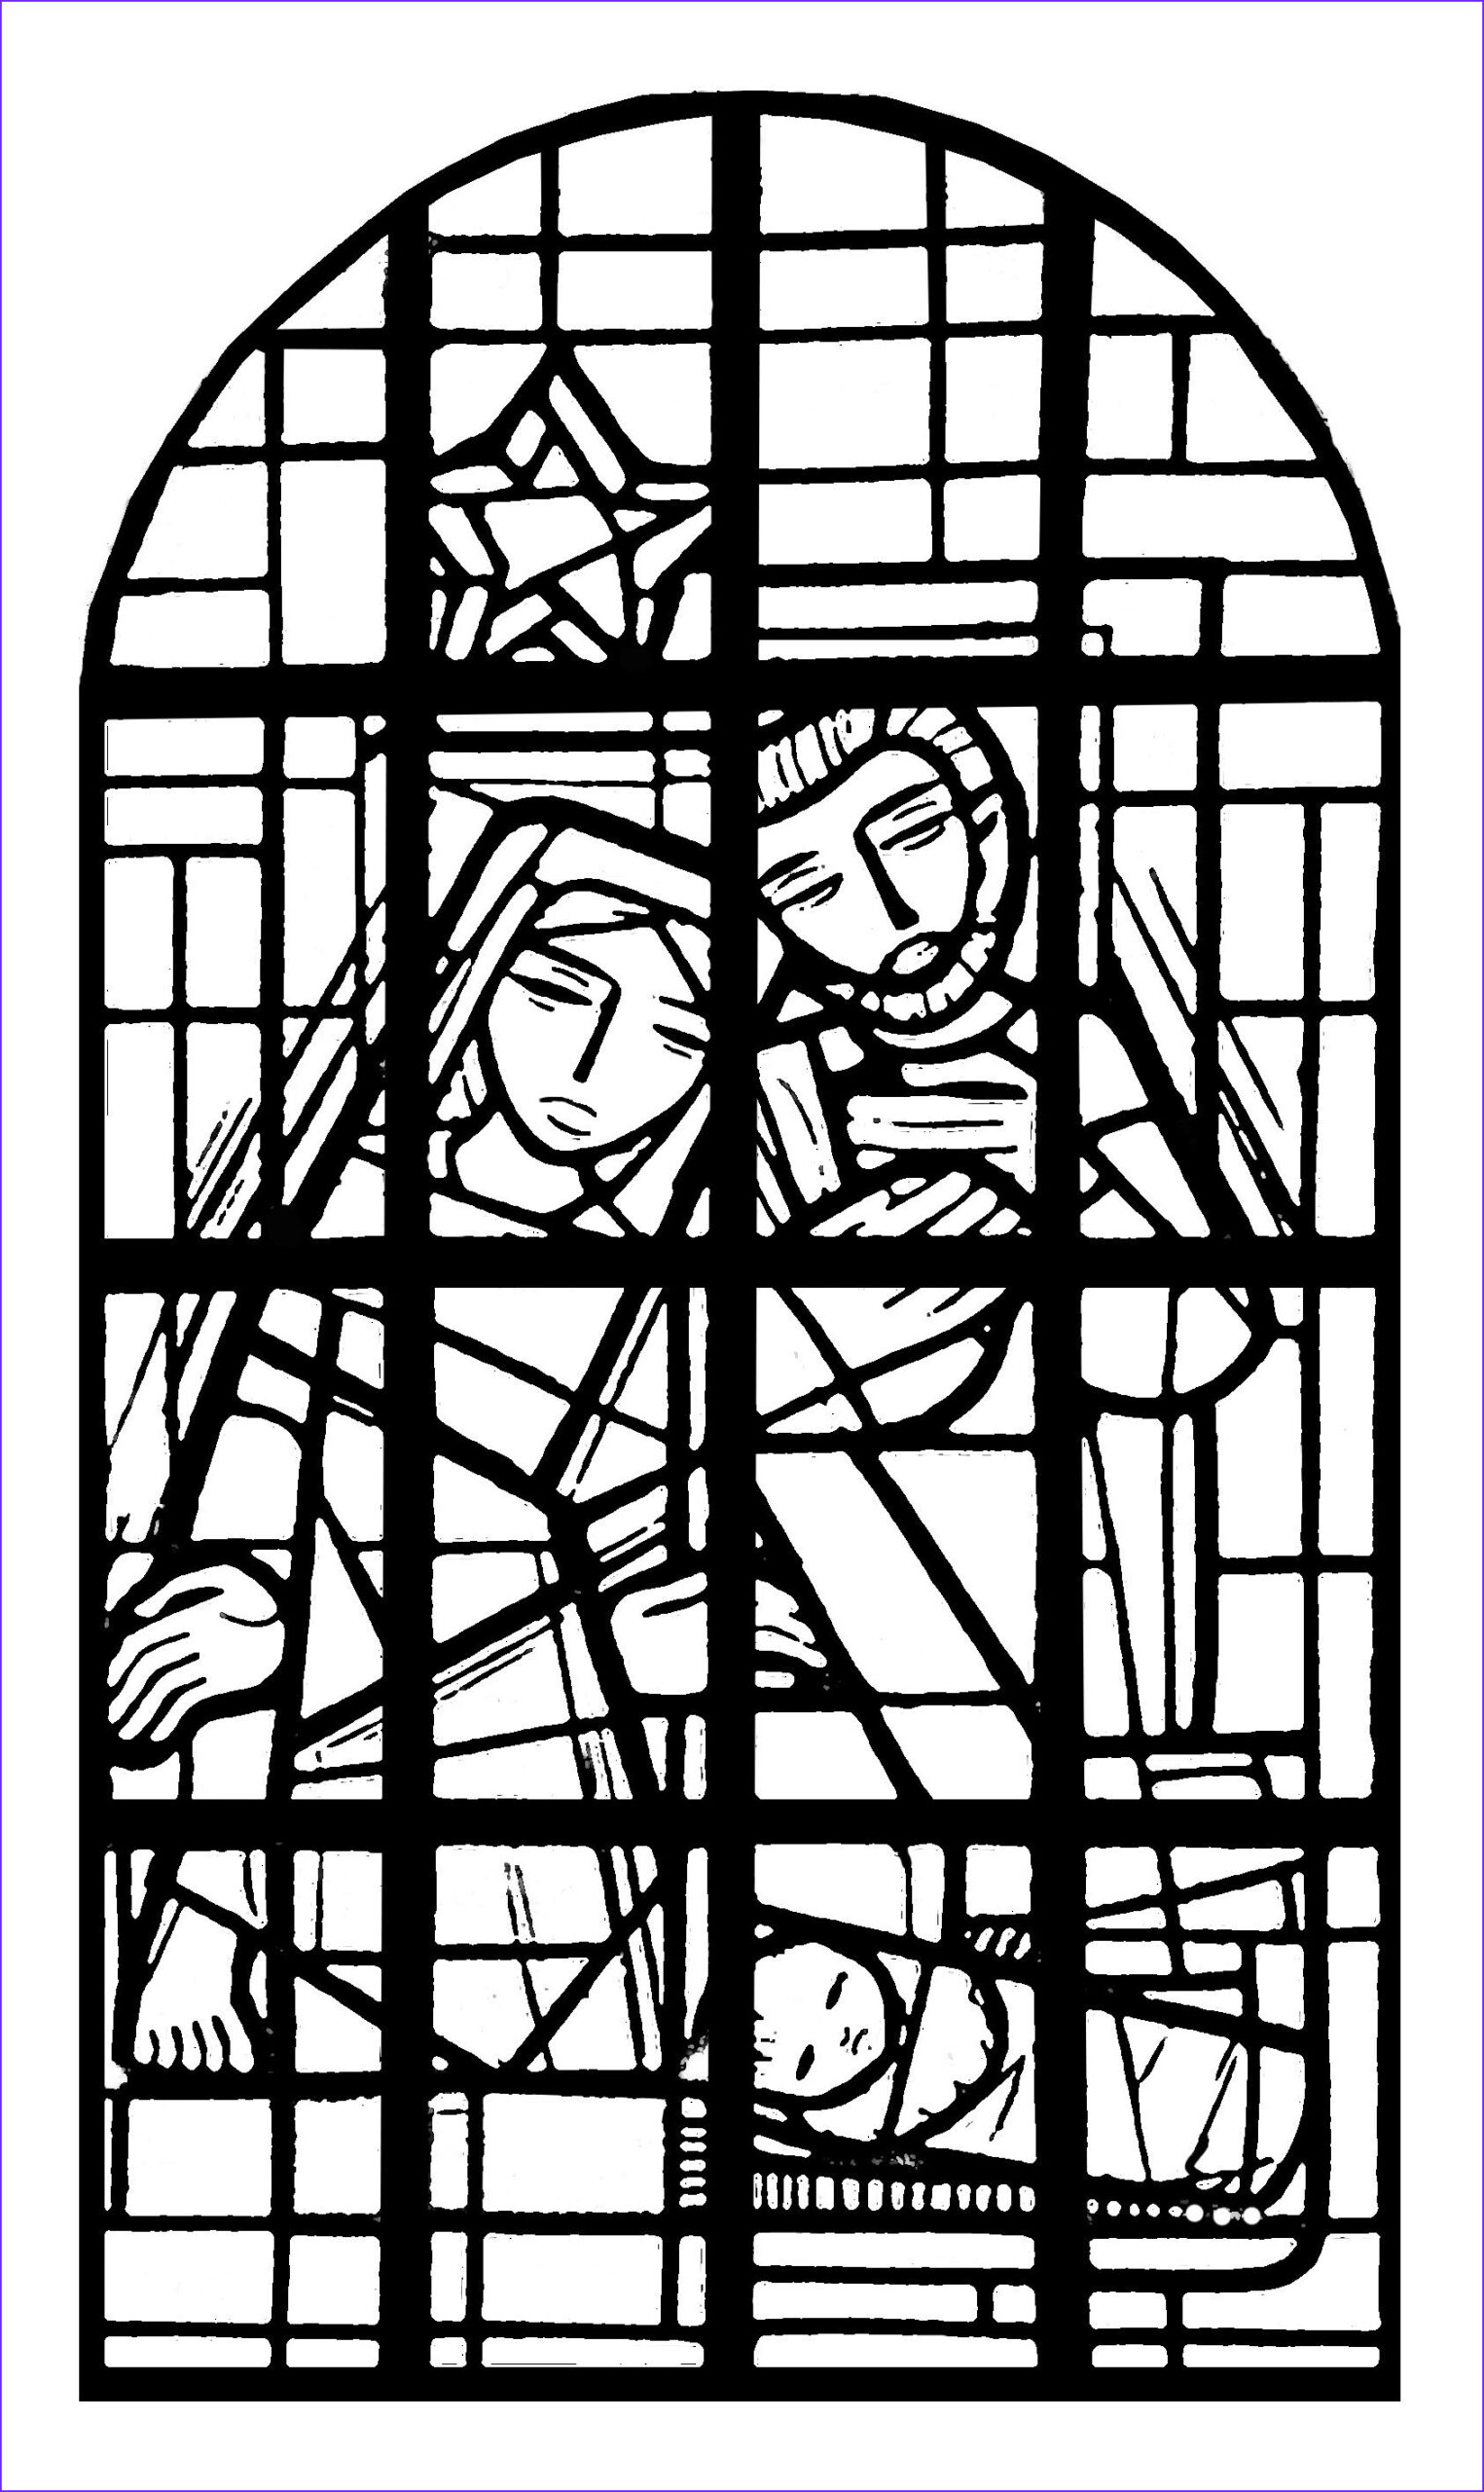 Stained Glass Coloring Pages for Adults Beautiful Photos Coloring Adult Stained Glass Nave Church Immaculee